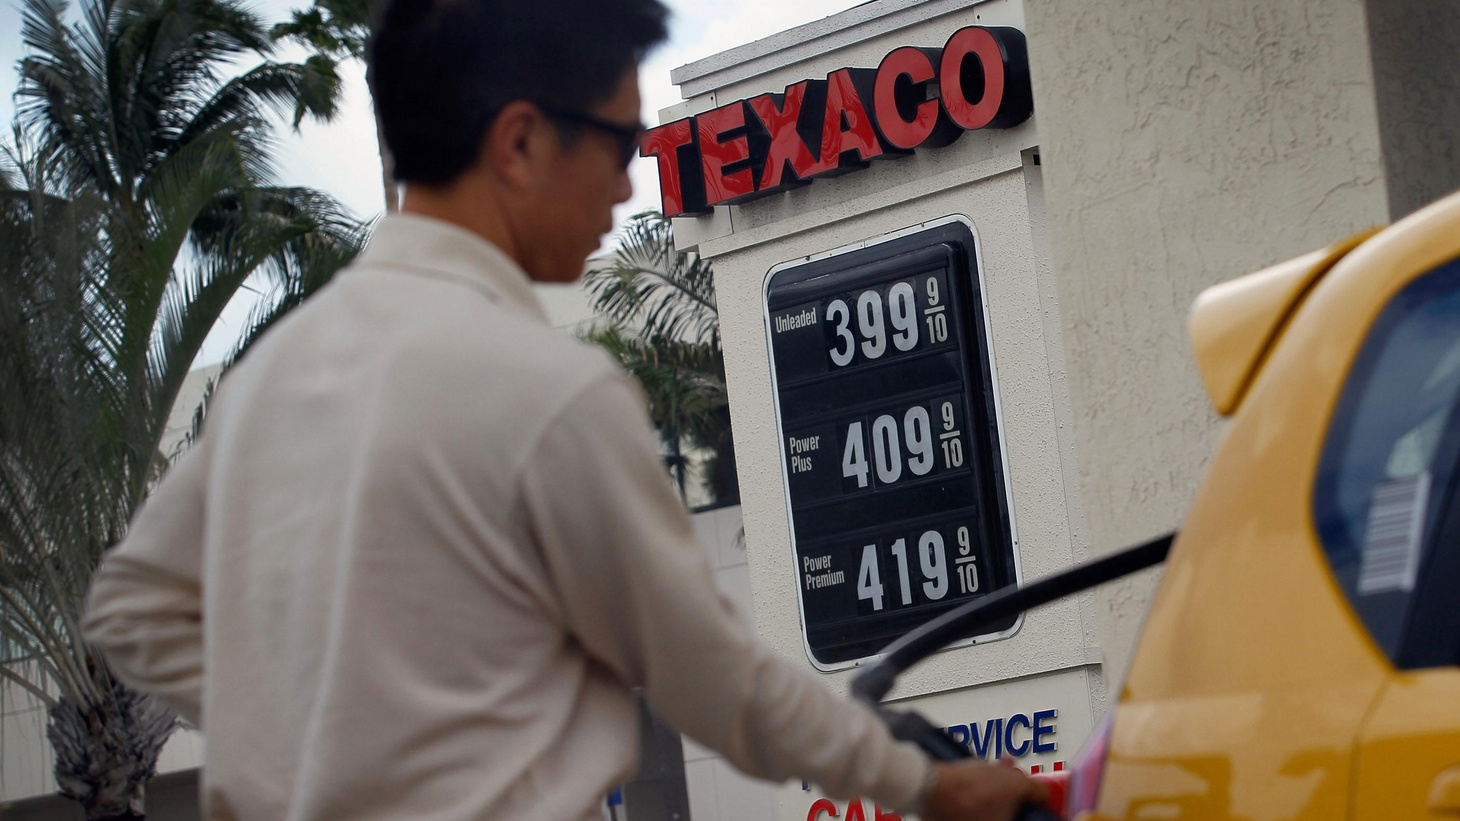 Americans are suffering at the pump, and Republicans are blaming President Obama. What are the causes of increased gas prices? Can Obama persuade voters it's not his fault?